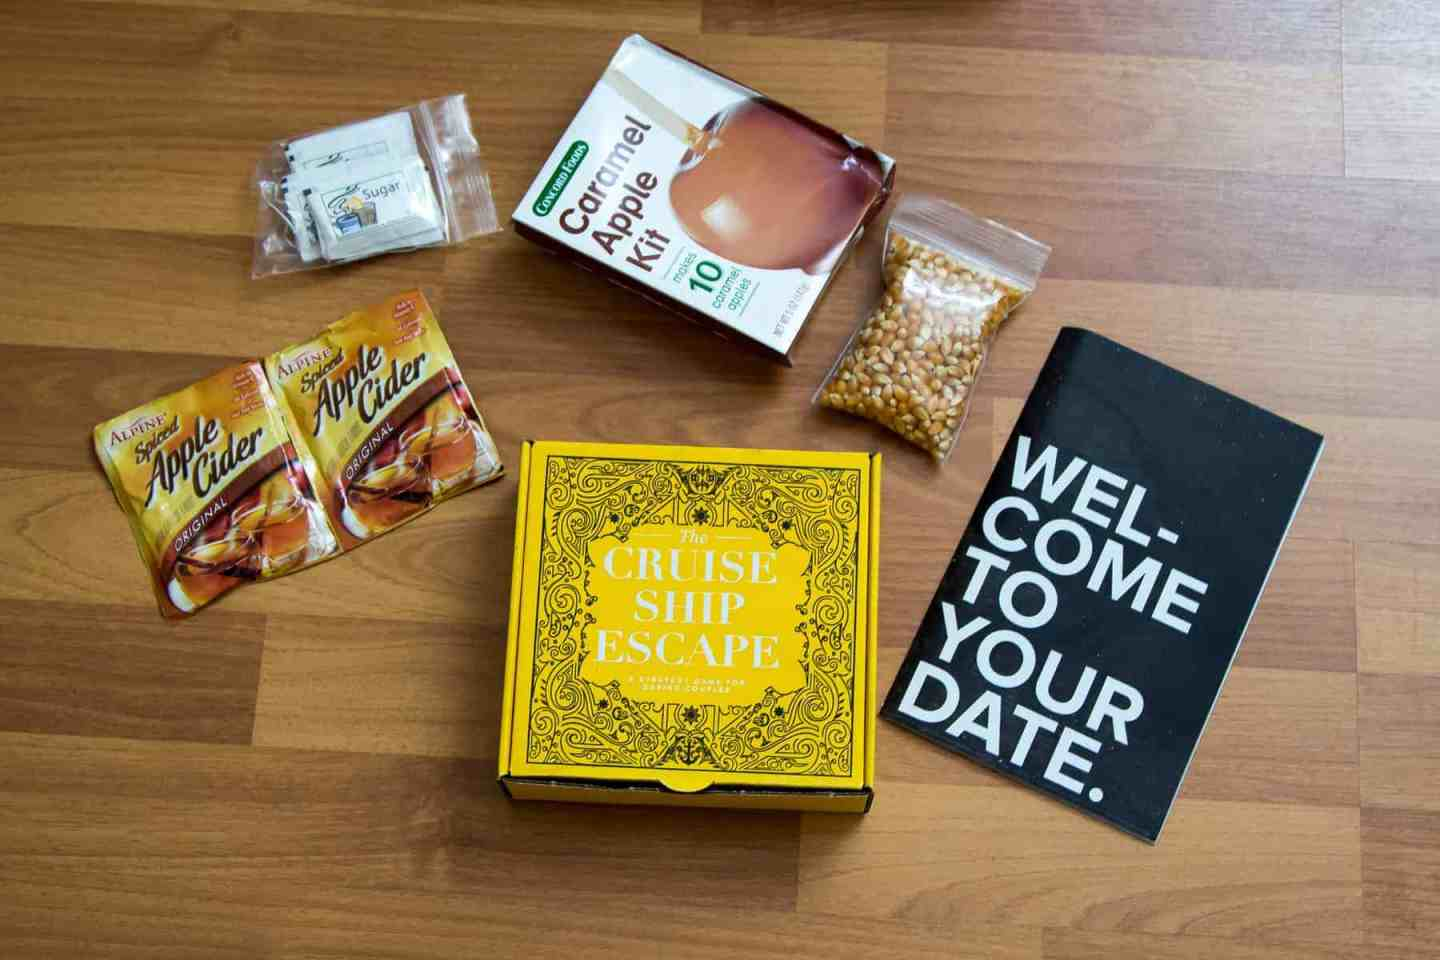 Why We Have Date Night And Our Date Box Experience